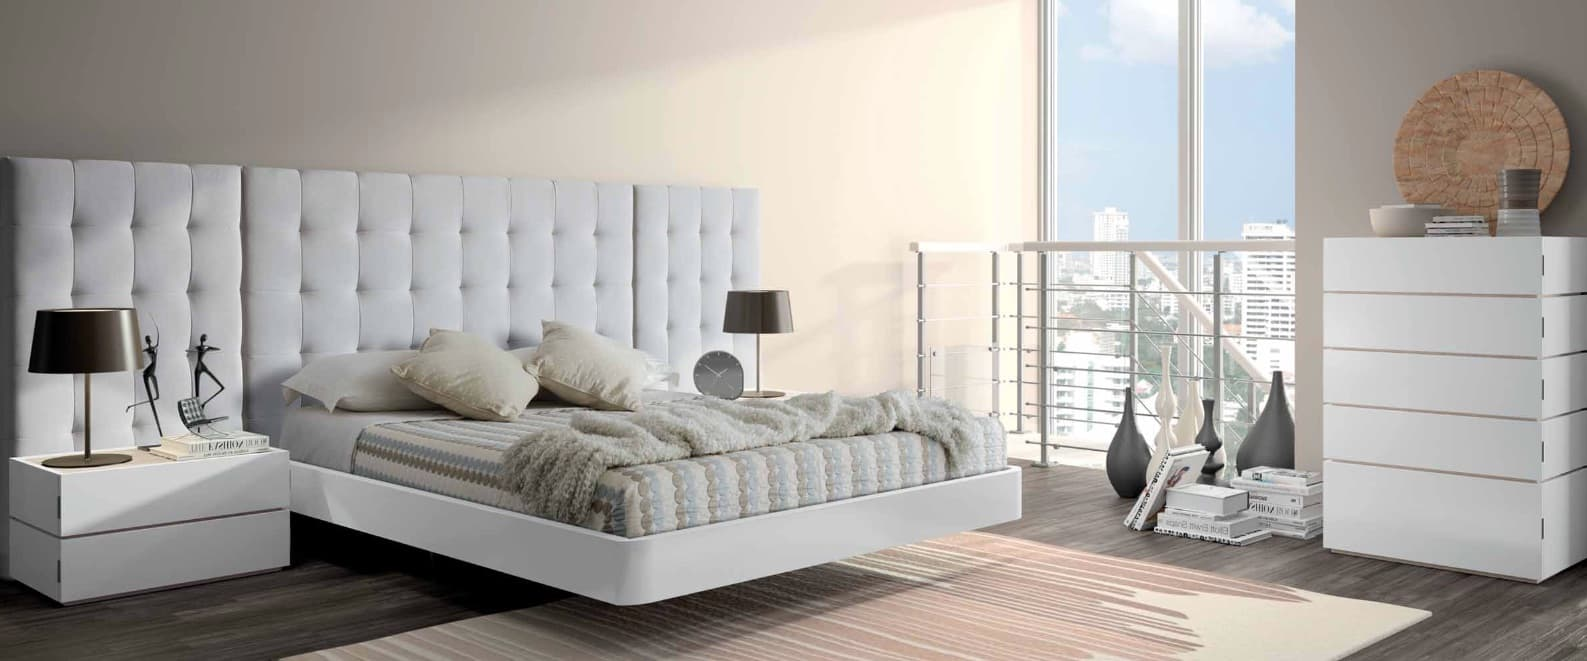 Lit rectangle ambiance bois chambre adulte inspiration for Ambiance chambre adulte